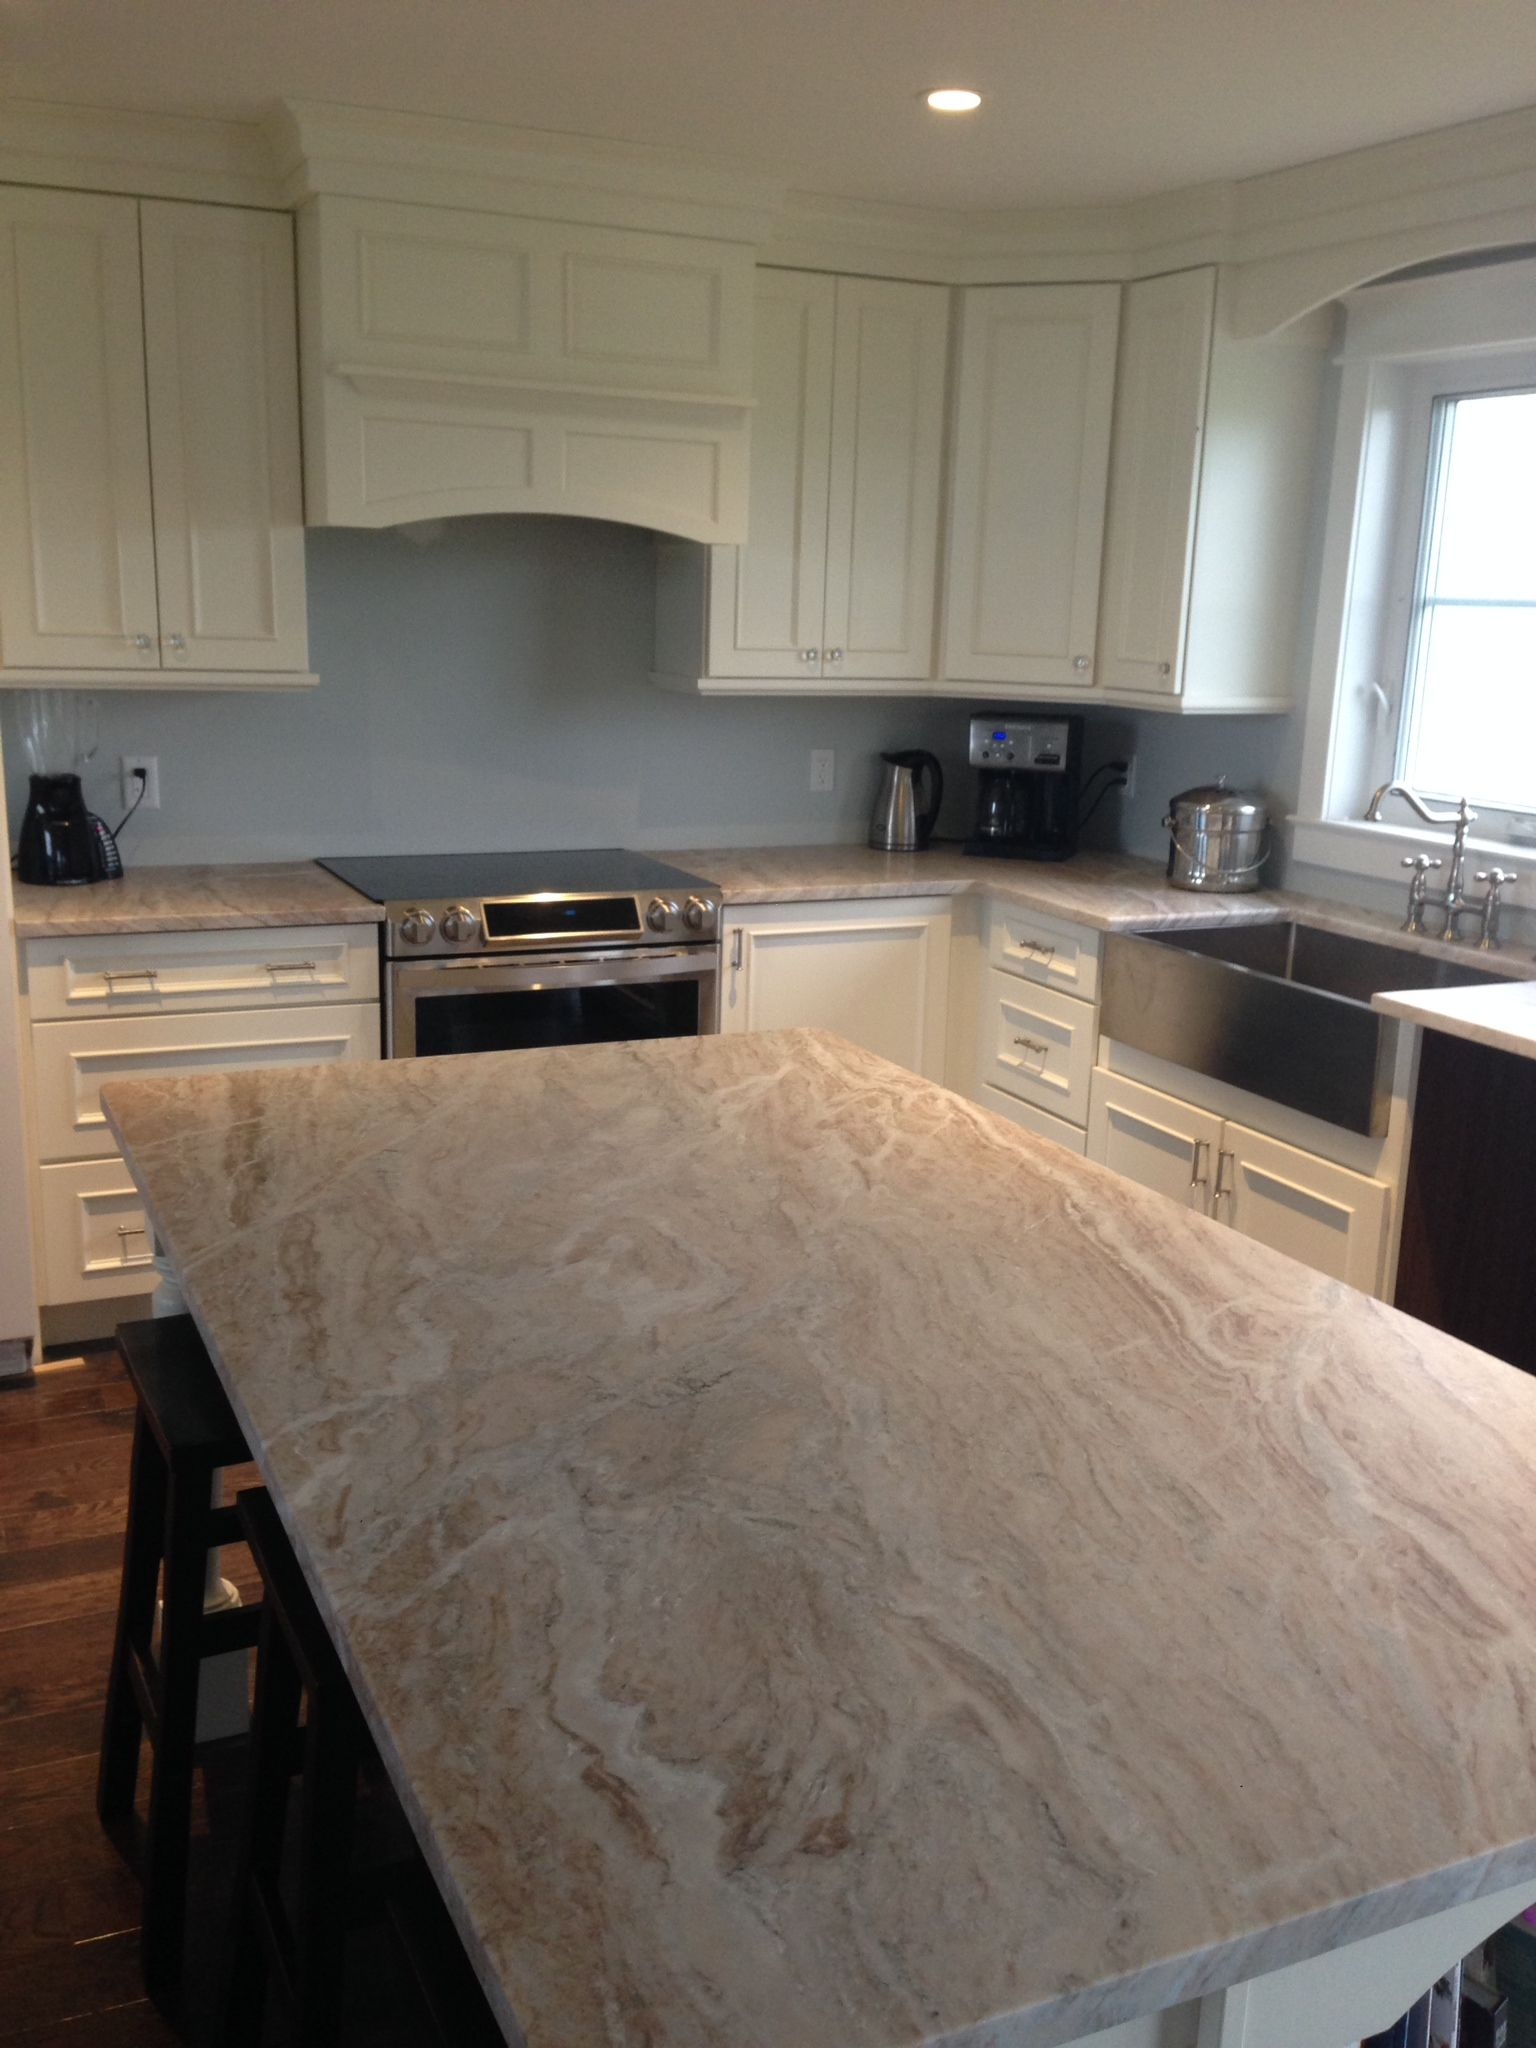 decor countertop with countertops price amazing kitchen your for leather design plus finish ideas leathered steel granite rock